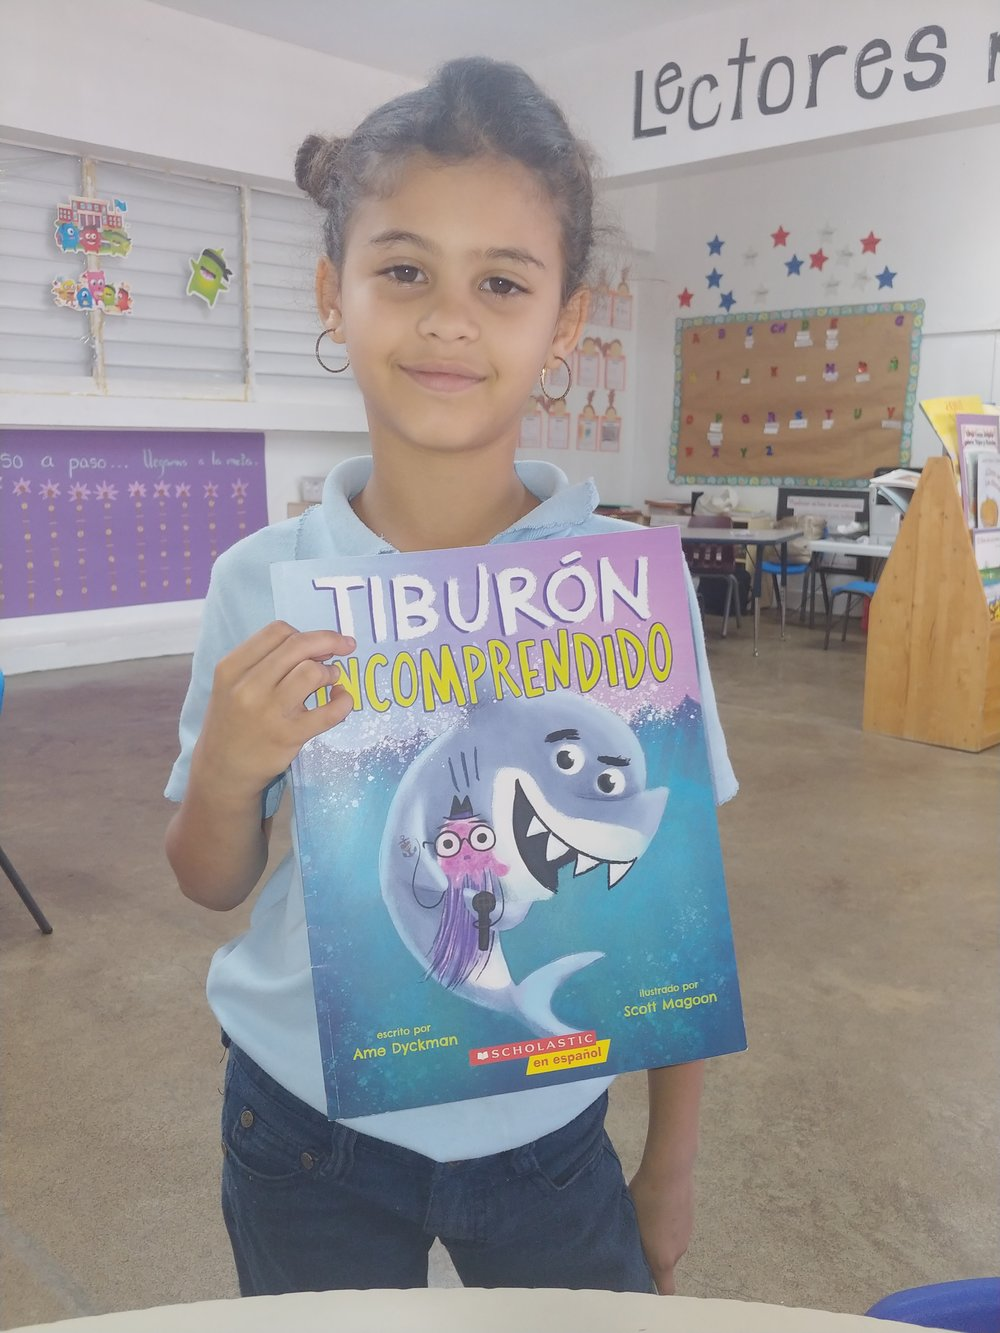 Stories of Hope - During the last month, third grade students have been asking to take books home from our classroom library. This student from Lectores para un Futuro expressed she wished to share a picture book with her younger brother. While other students chose to read chapter books that match their reading level.